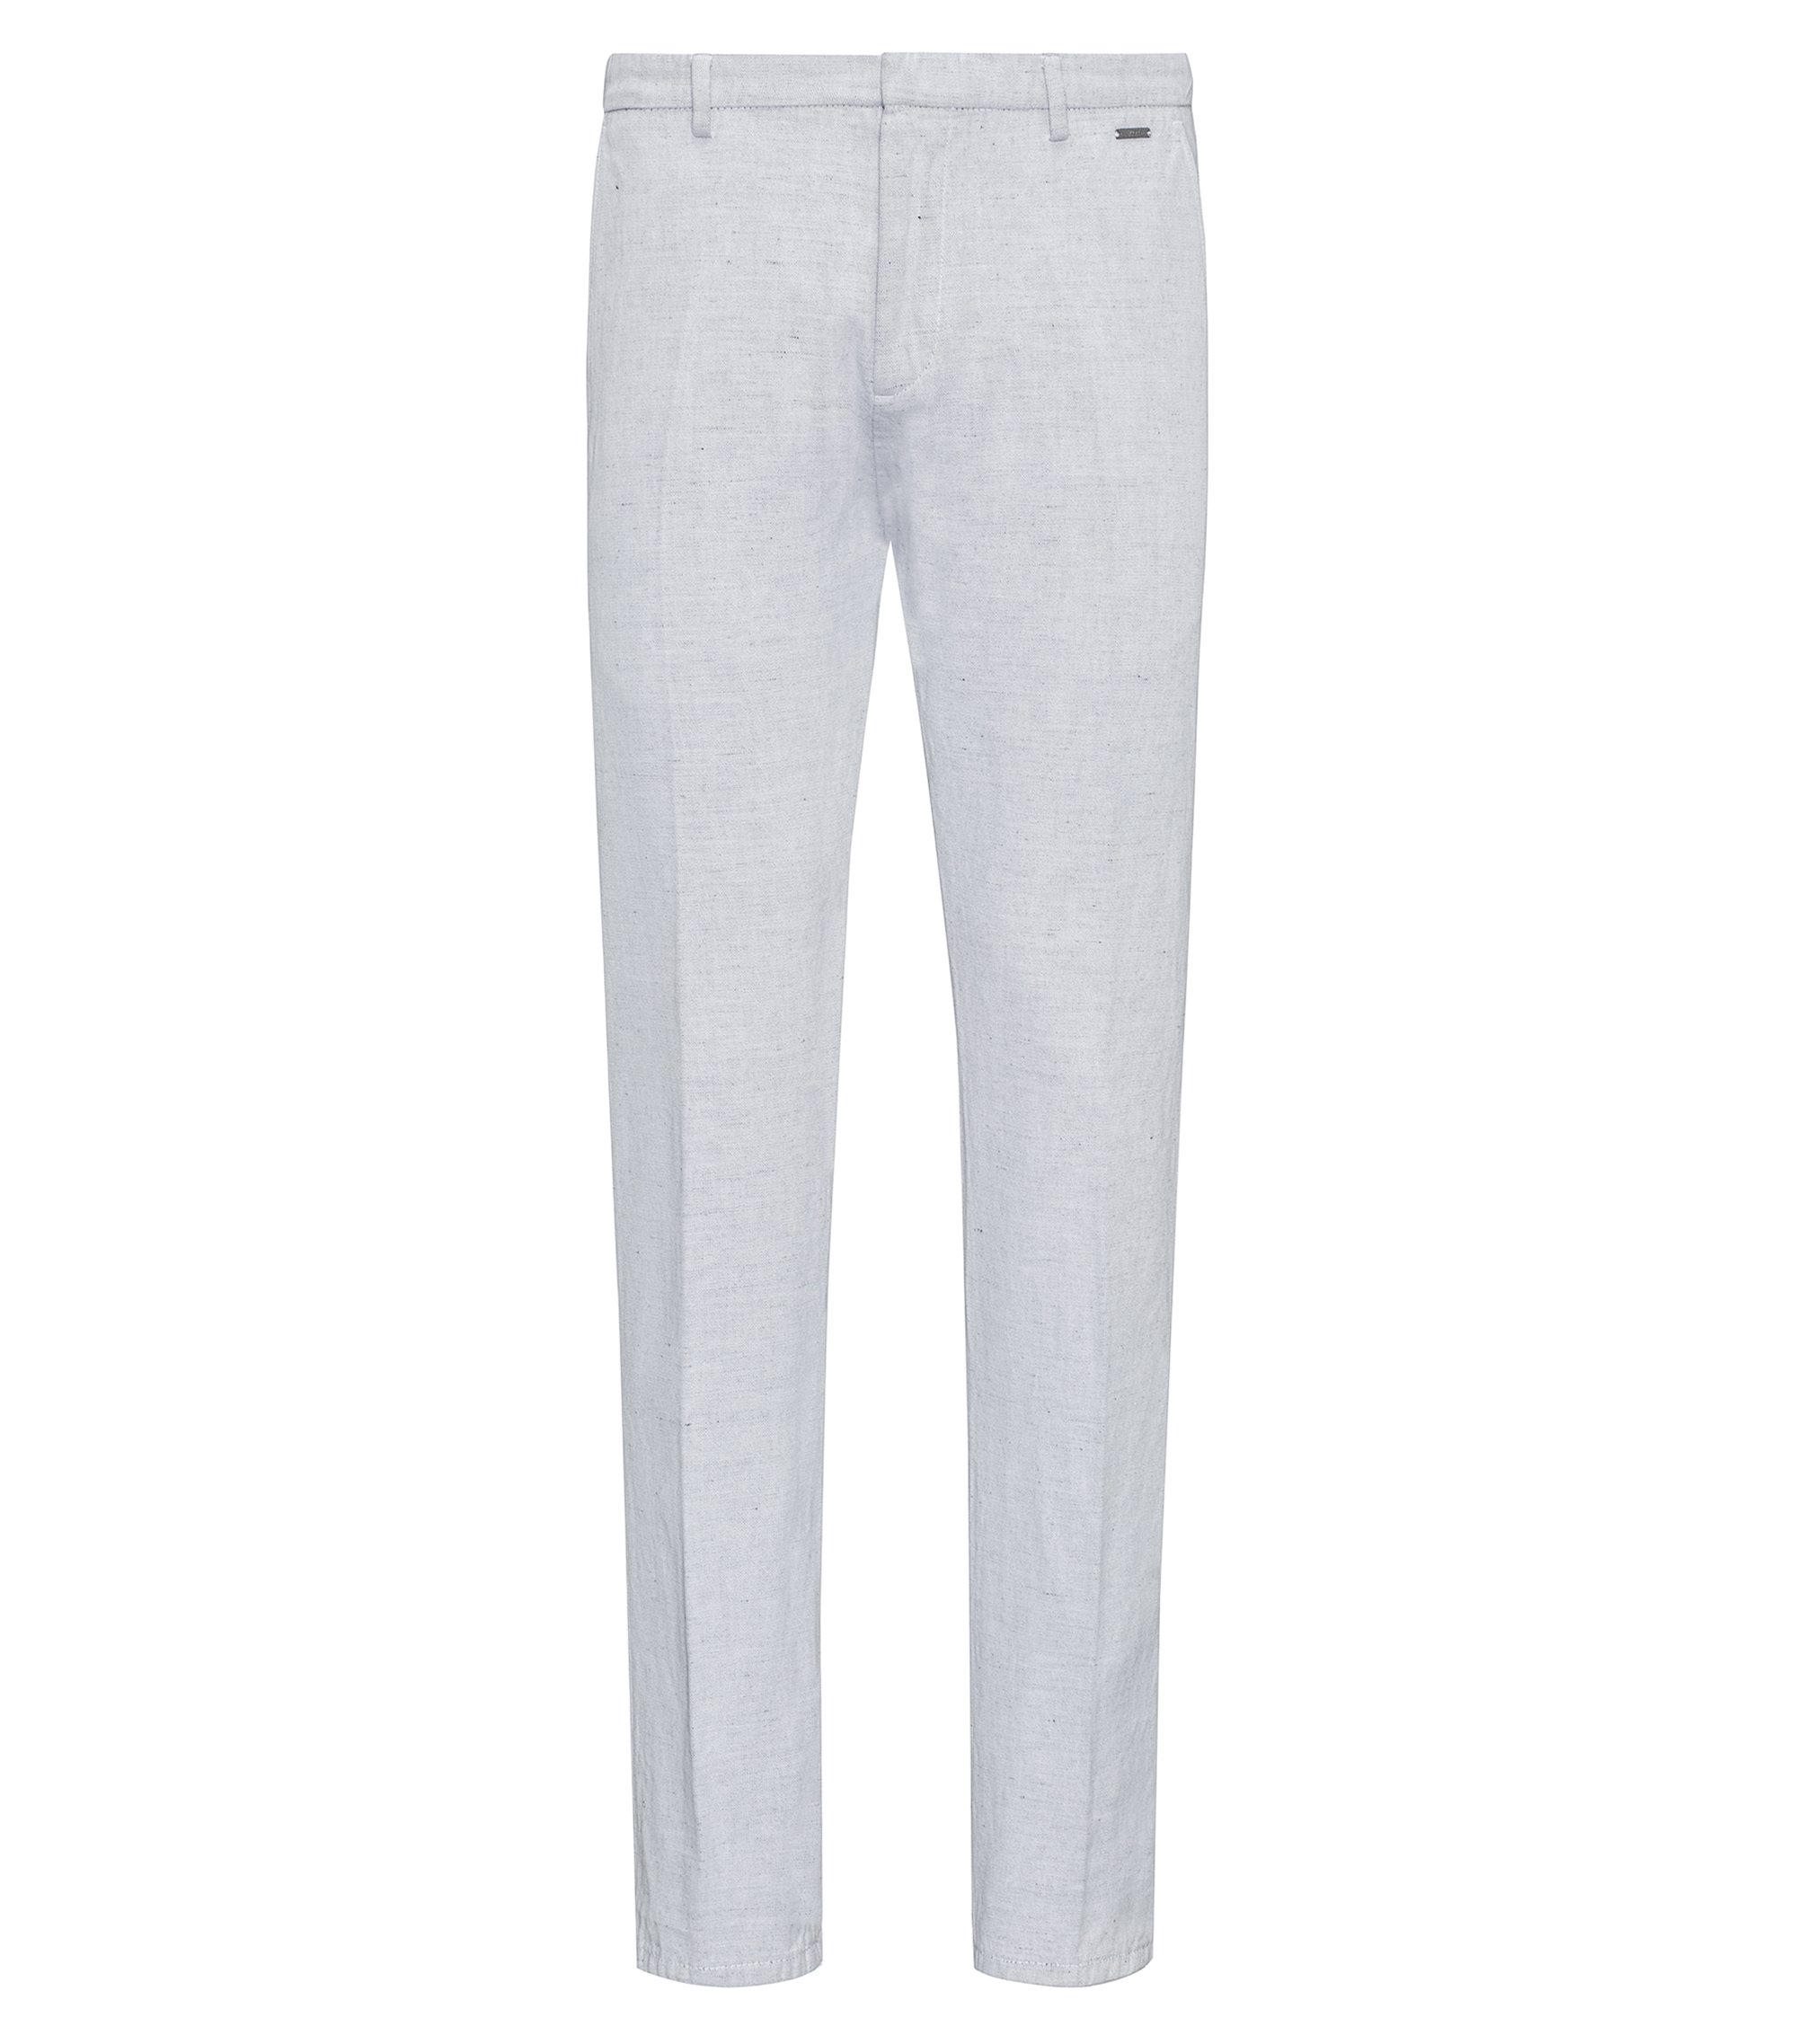 Dyed slim-fit trousers in cotton with a touch of linen, White